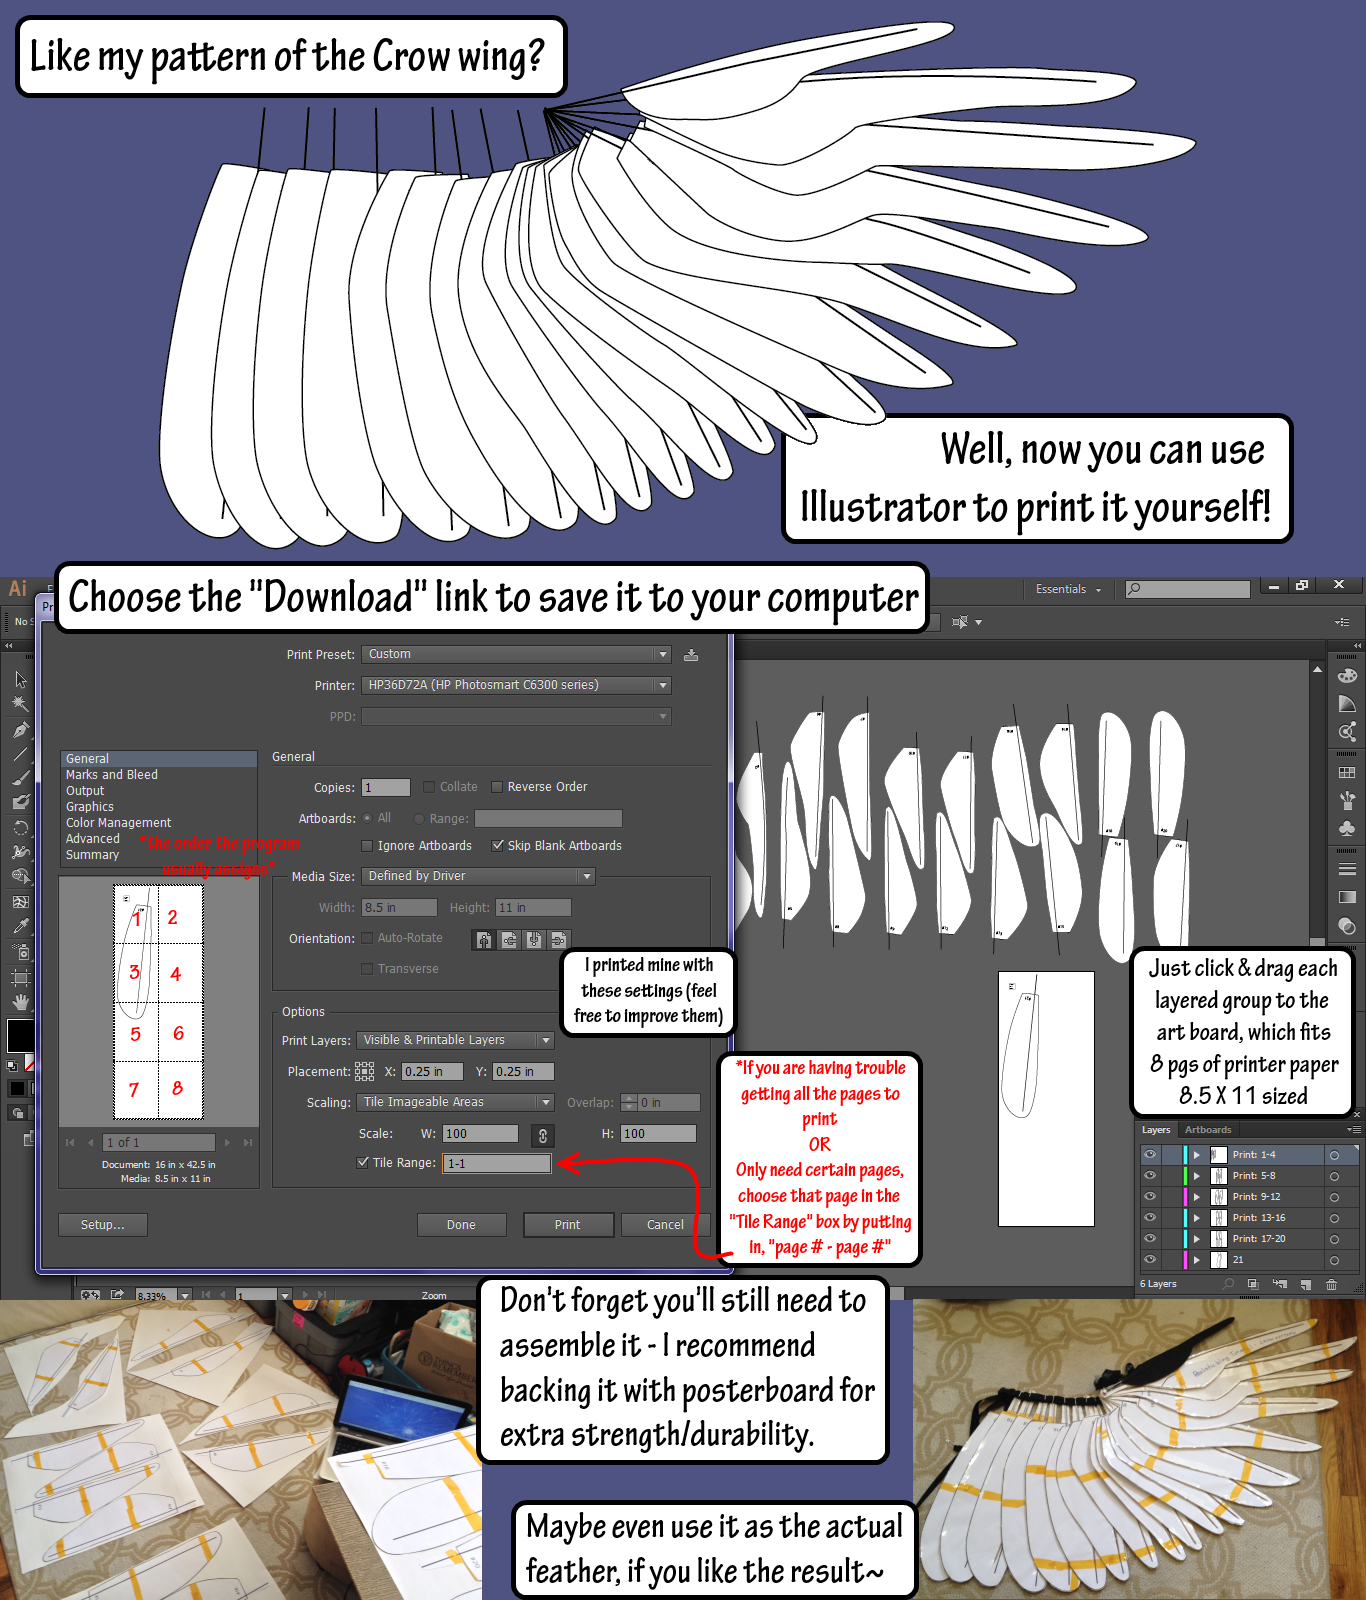 Crow wing blueprint ai and pdf download by sunnybrook1 on deviantart crow wing blueprint ai and pdf download by sunnybrook1 malvernweather Gallery